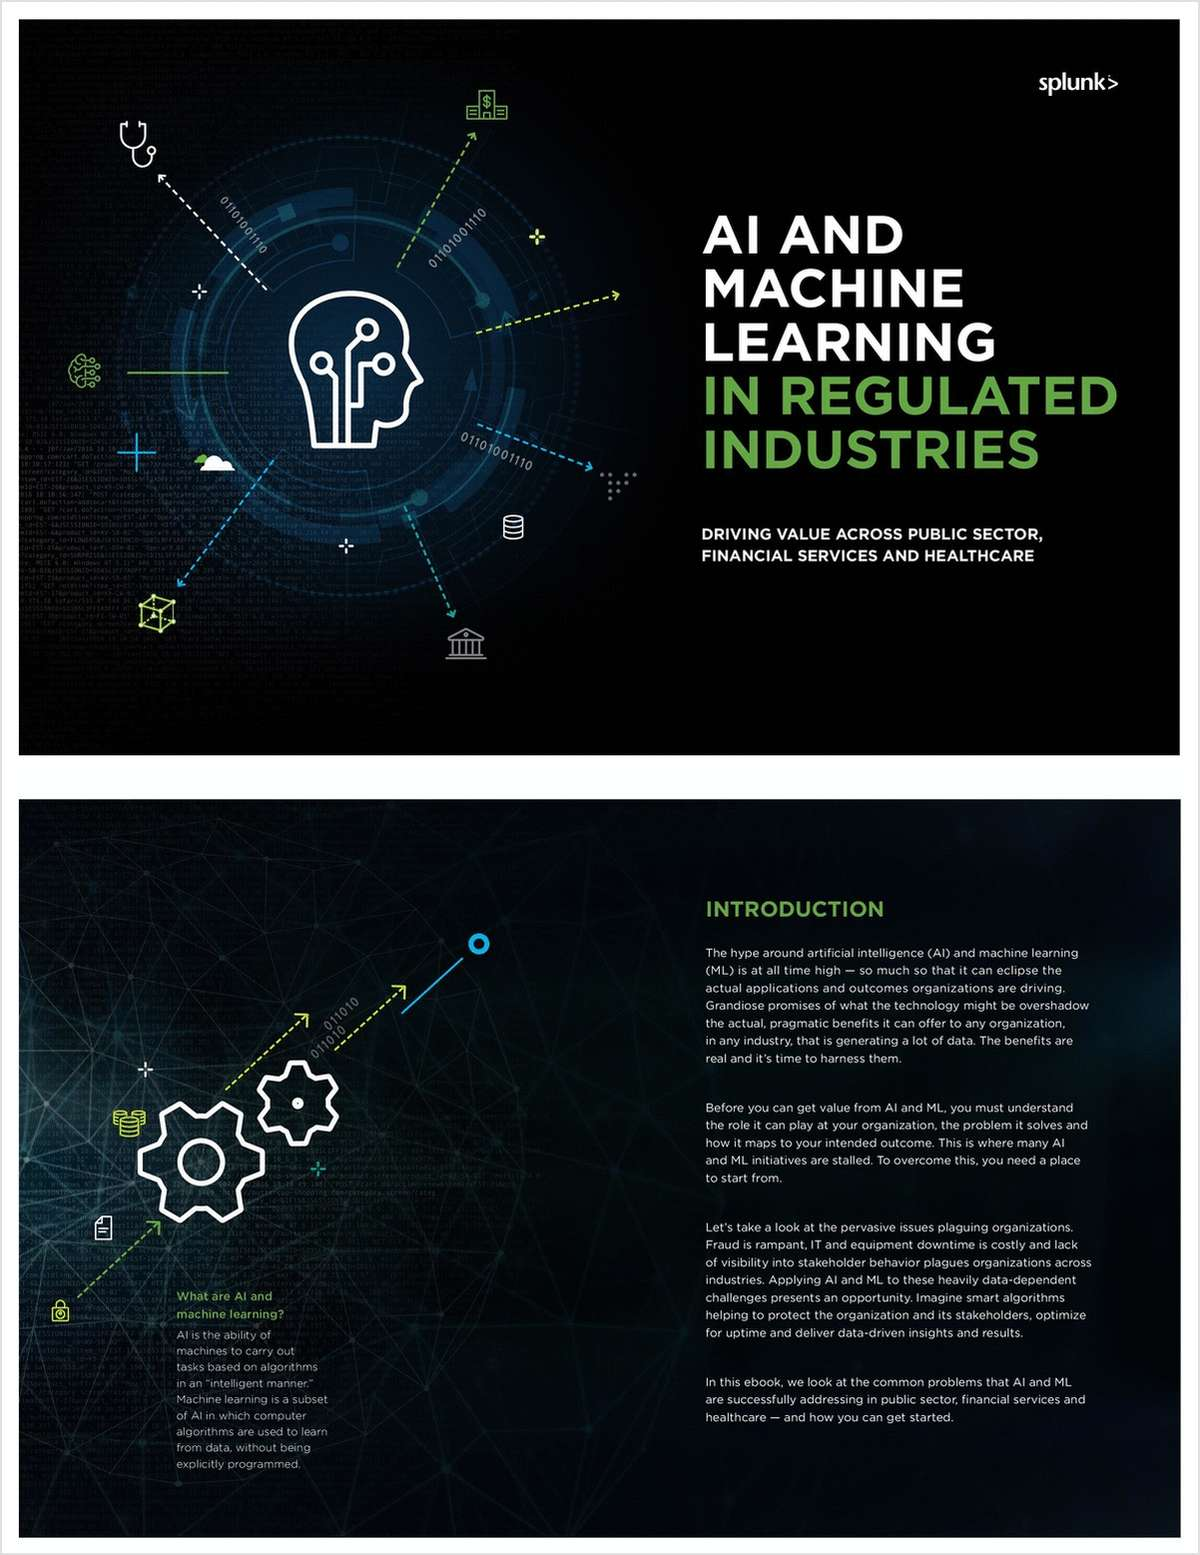 AI and Machine Learning in Regulated Industries